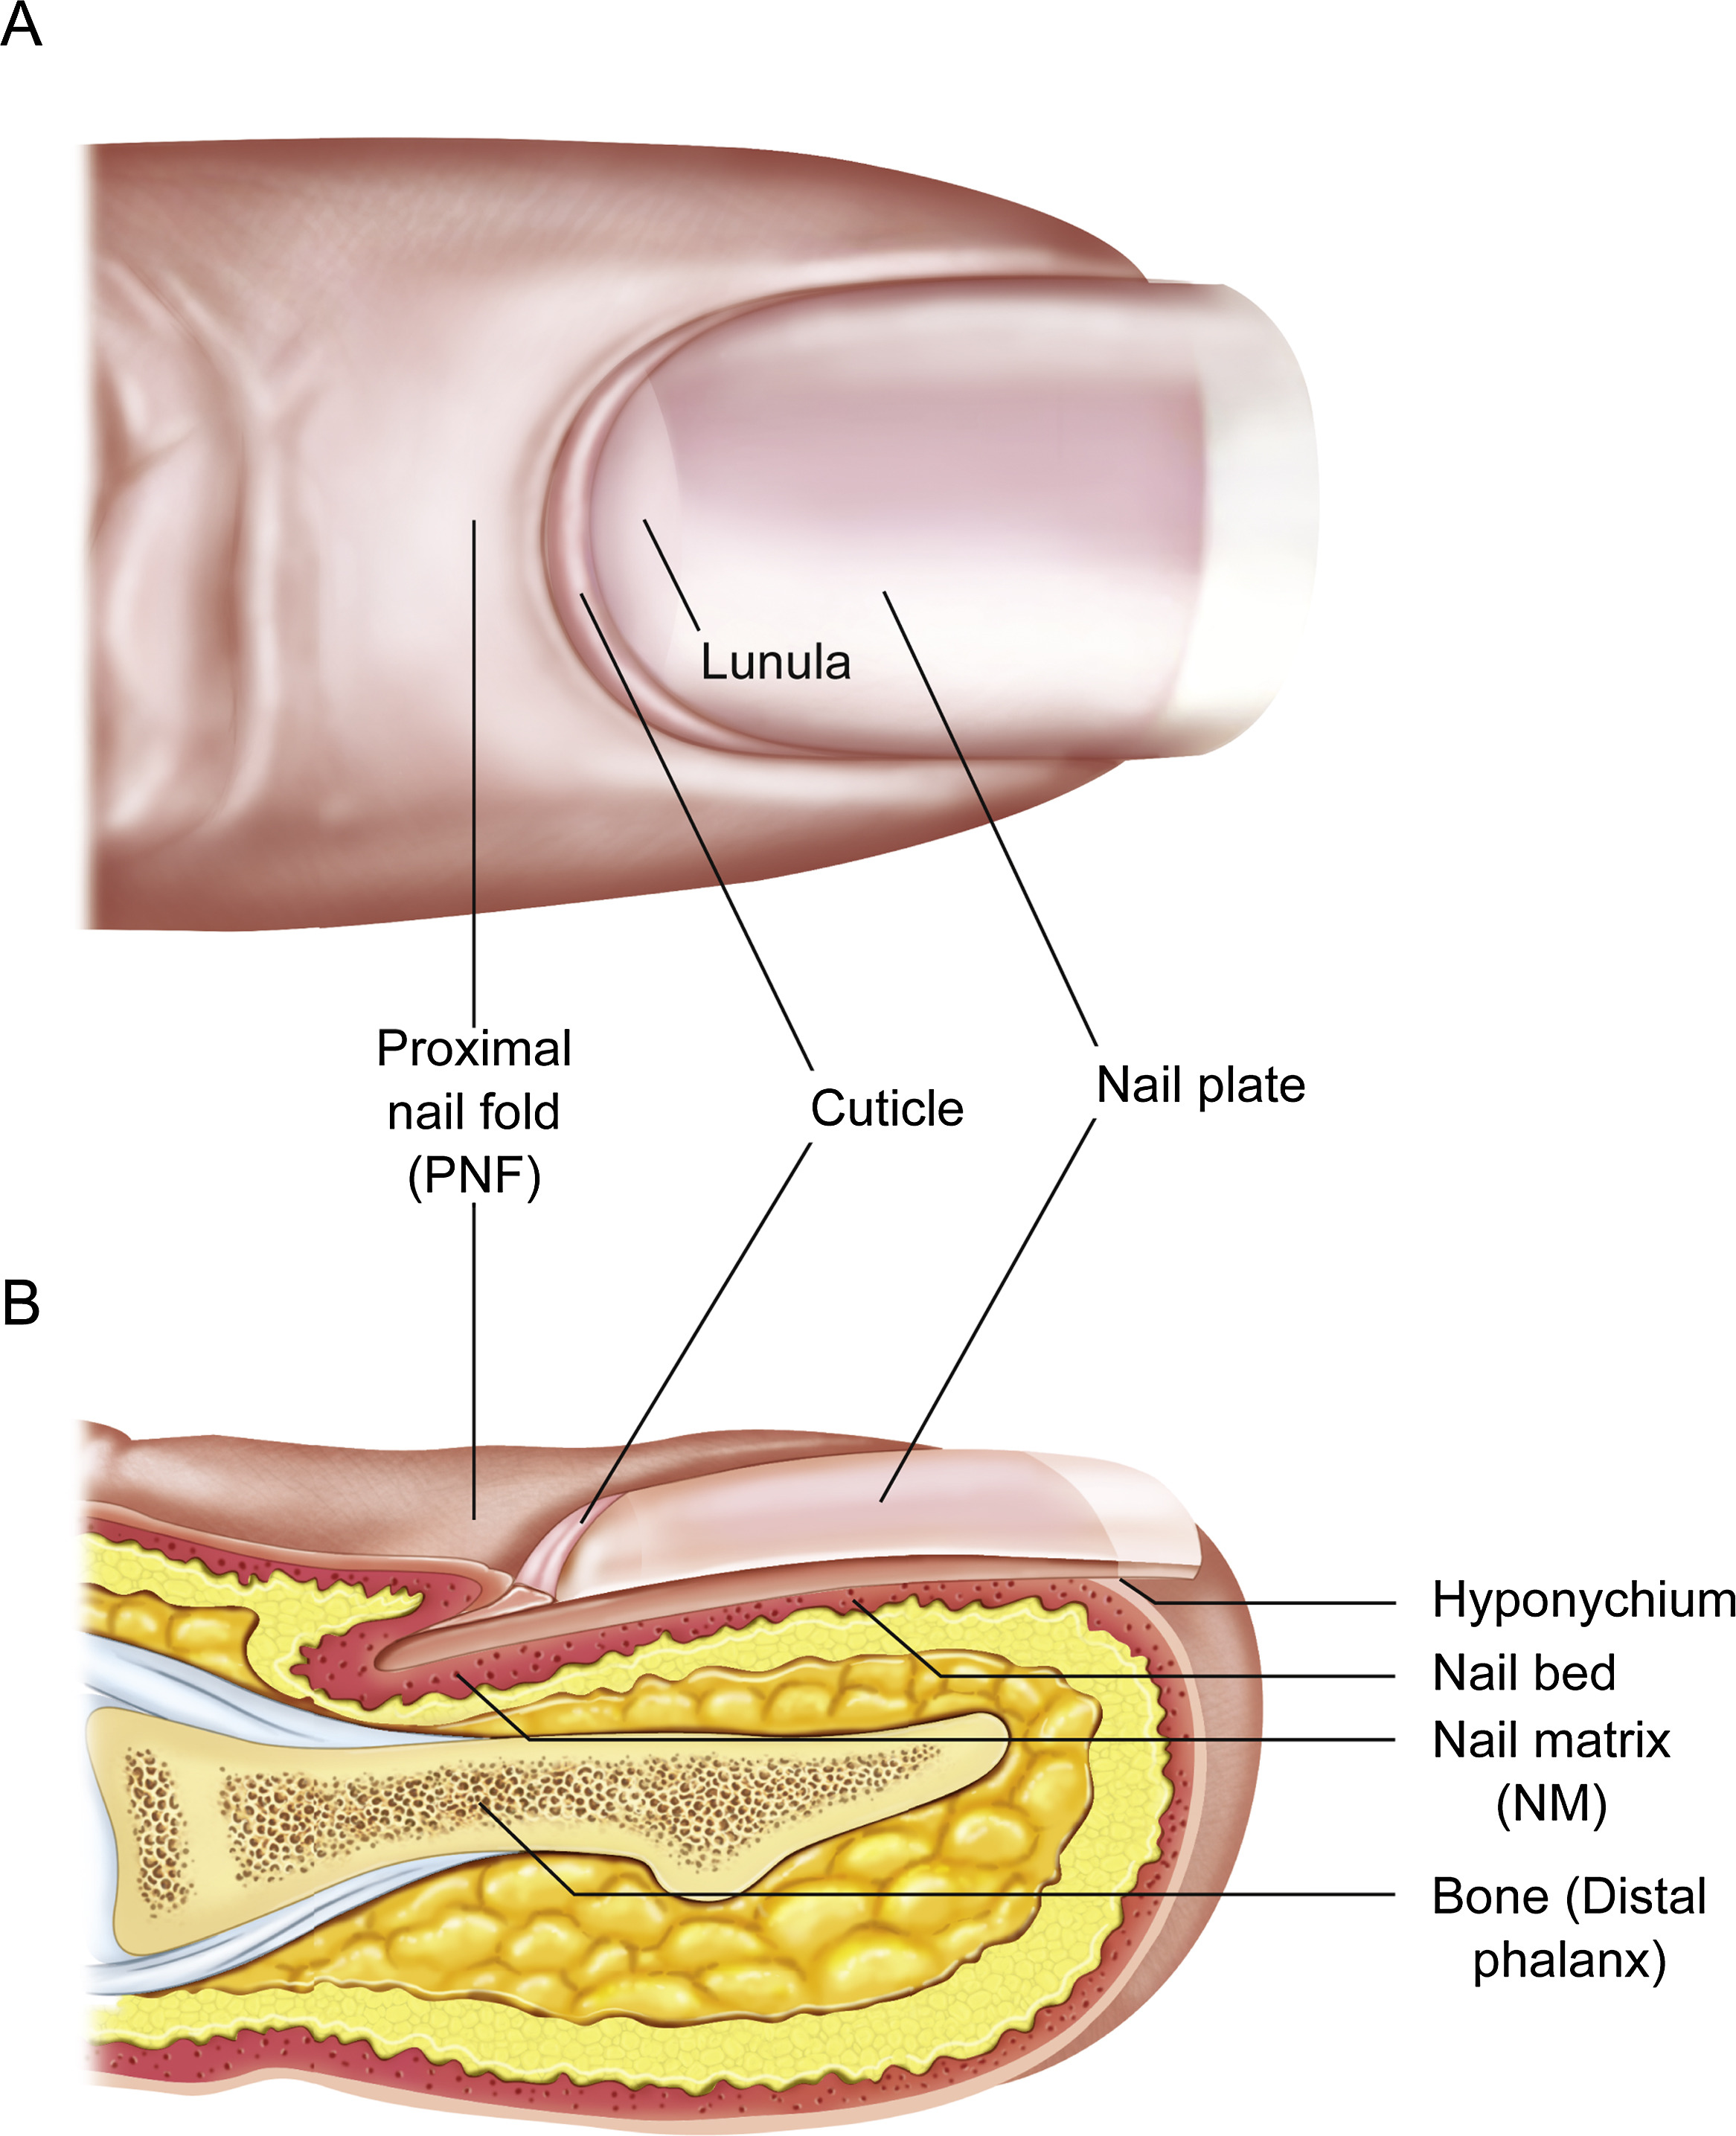 Exploring The Biology Of The Nail An Intriguing But Less